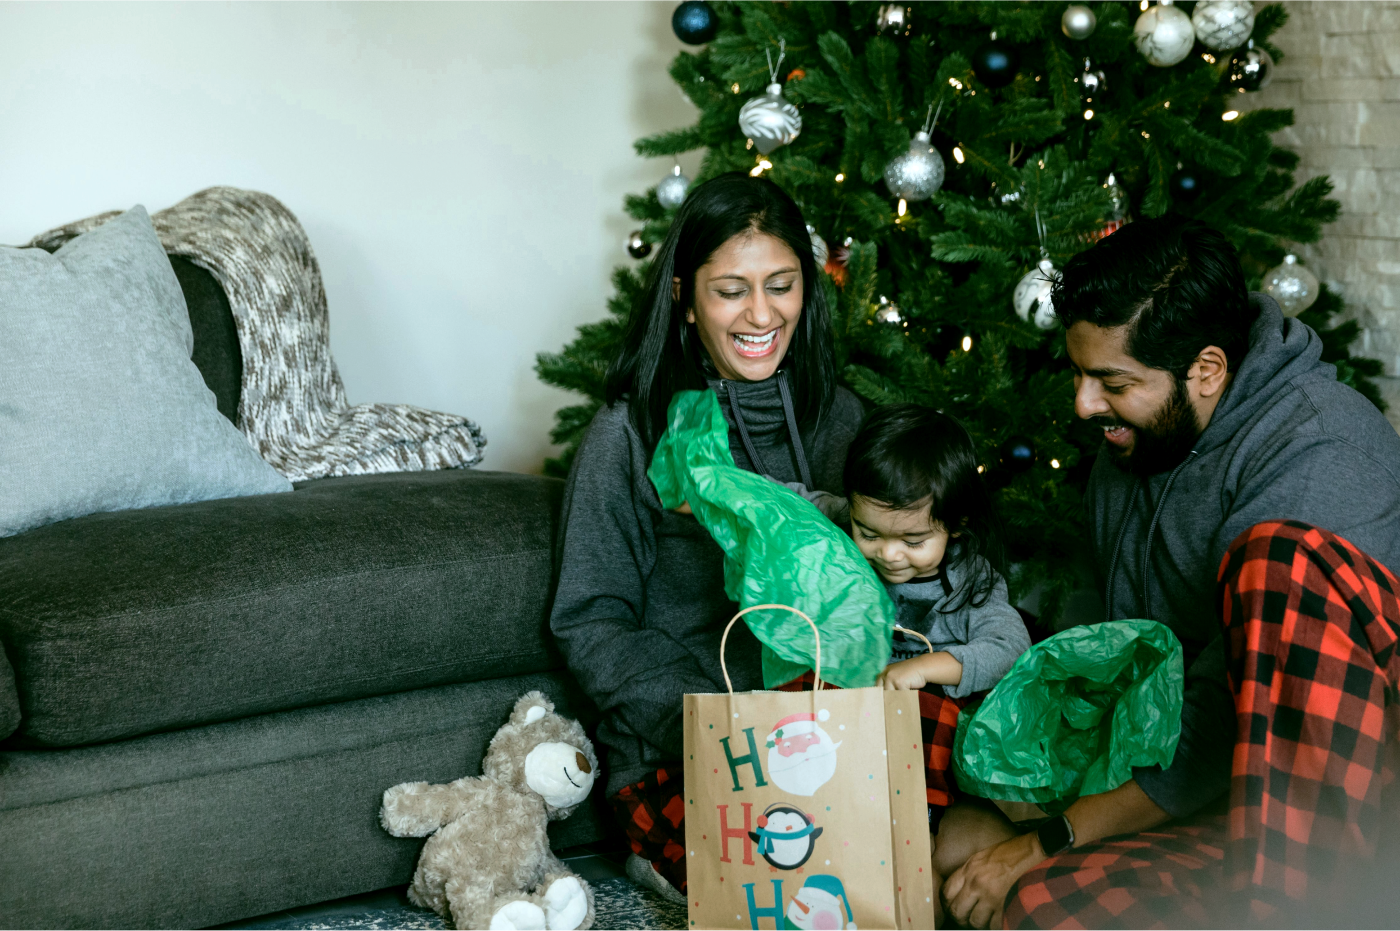 The Post-Purchase Experience: How to Be Customer-Centric this Holiday Season